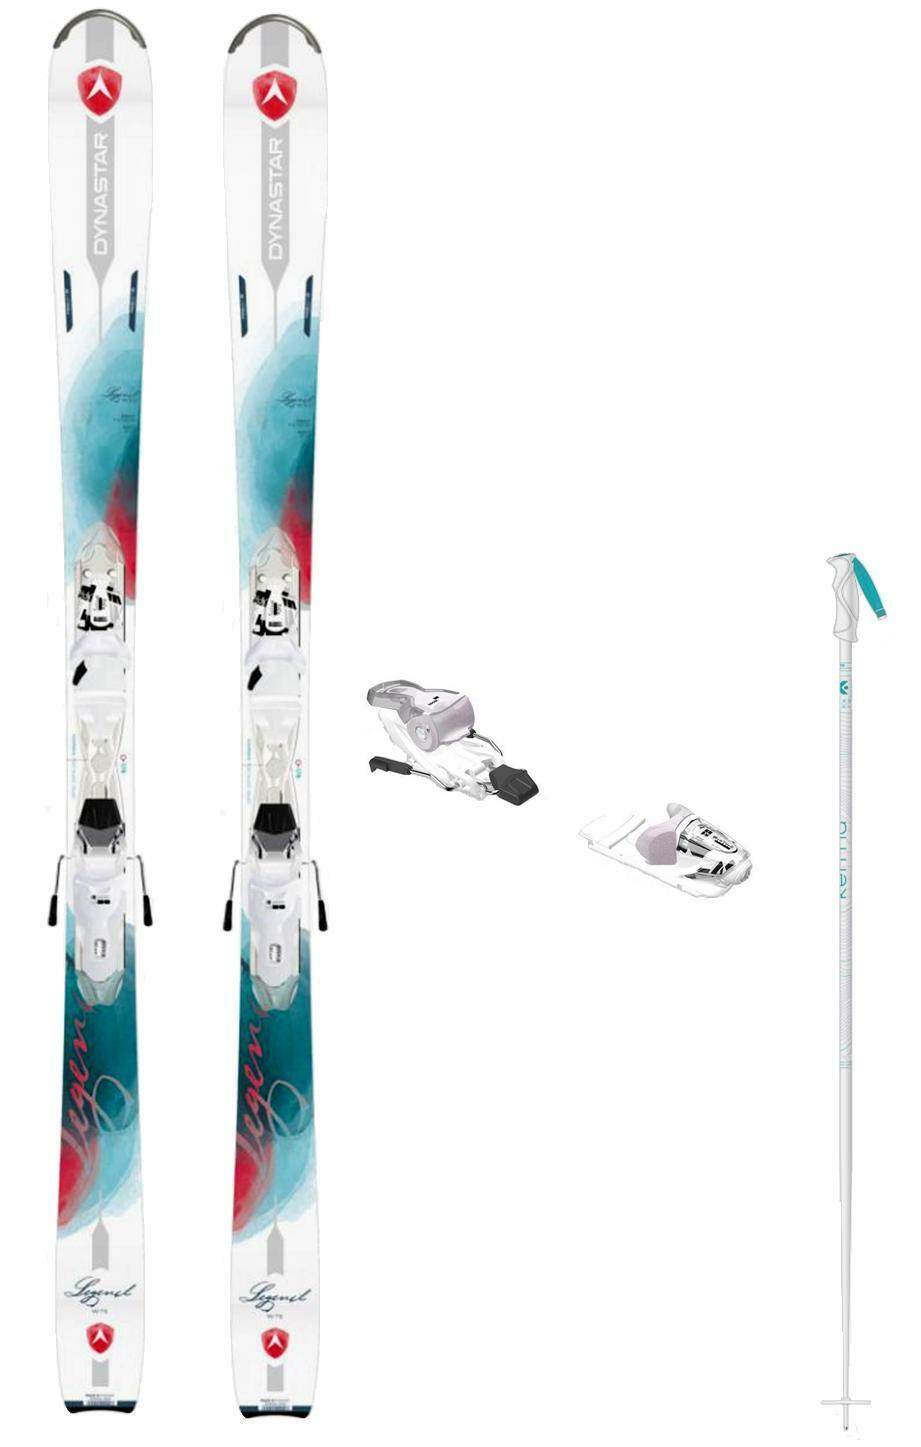 Dynastar Legend W 75 snow skis 156 cm w-bind (incl POLES at Buy It Now) new 2019